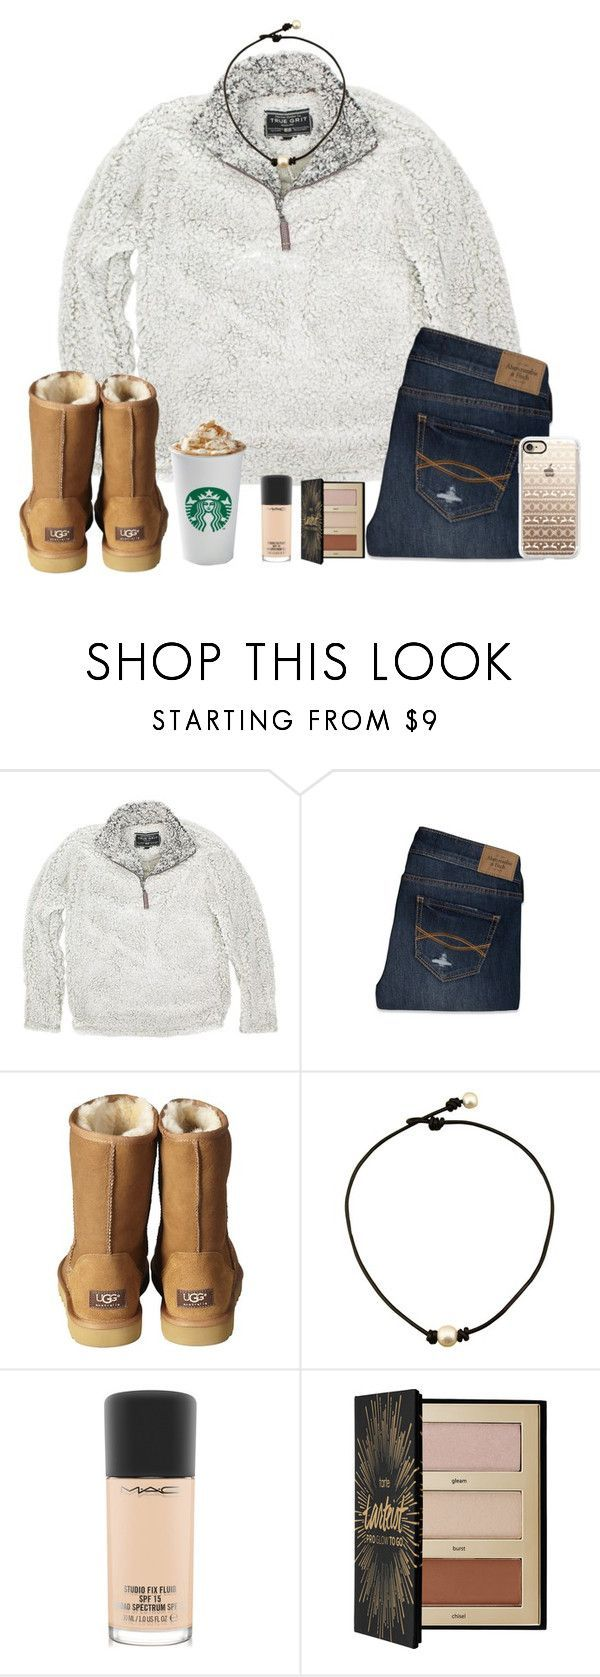 """""""❄️⛸"""" by gabyleoni ❤ liked on Polyvore featuring True Grit, Abercrombie & Fitch, UGG Australia, MAC Cosmetics, Sephora Collection and Casetify"""